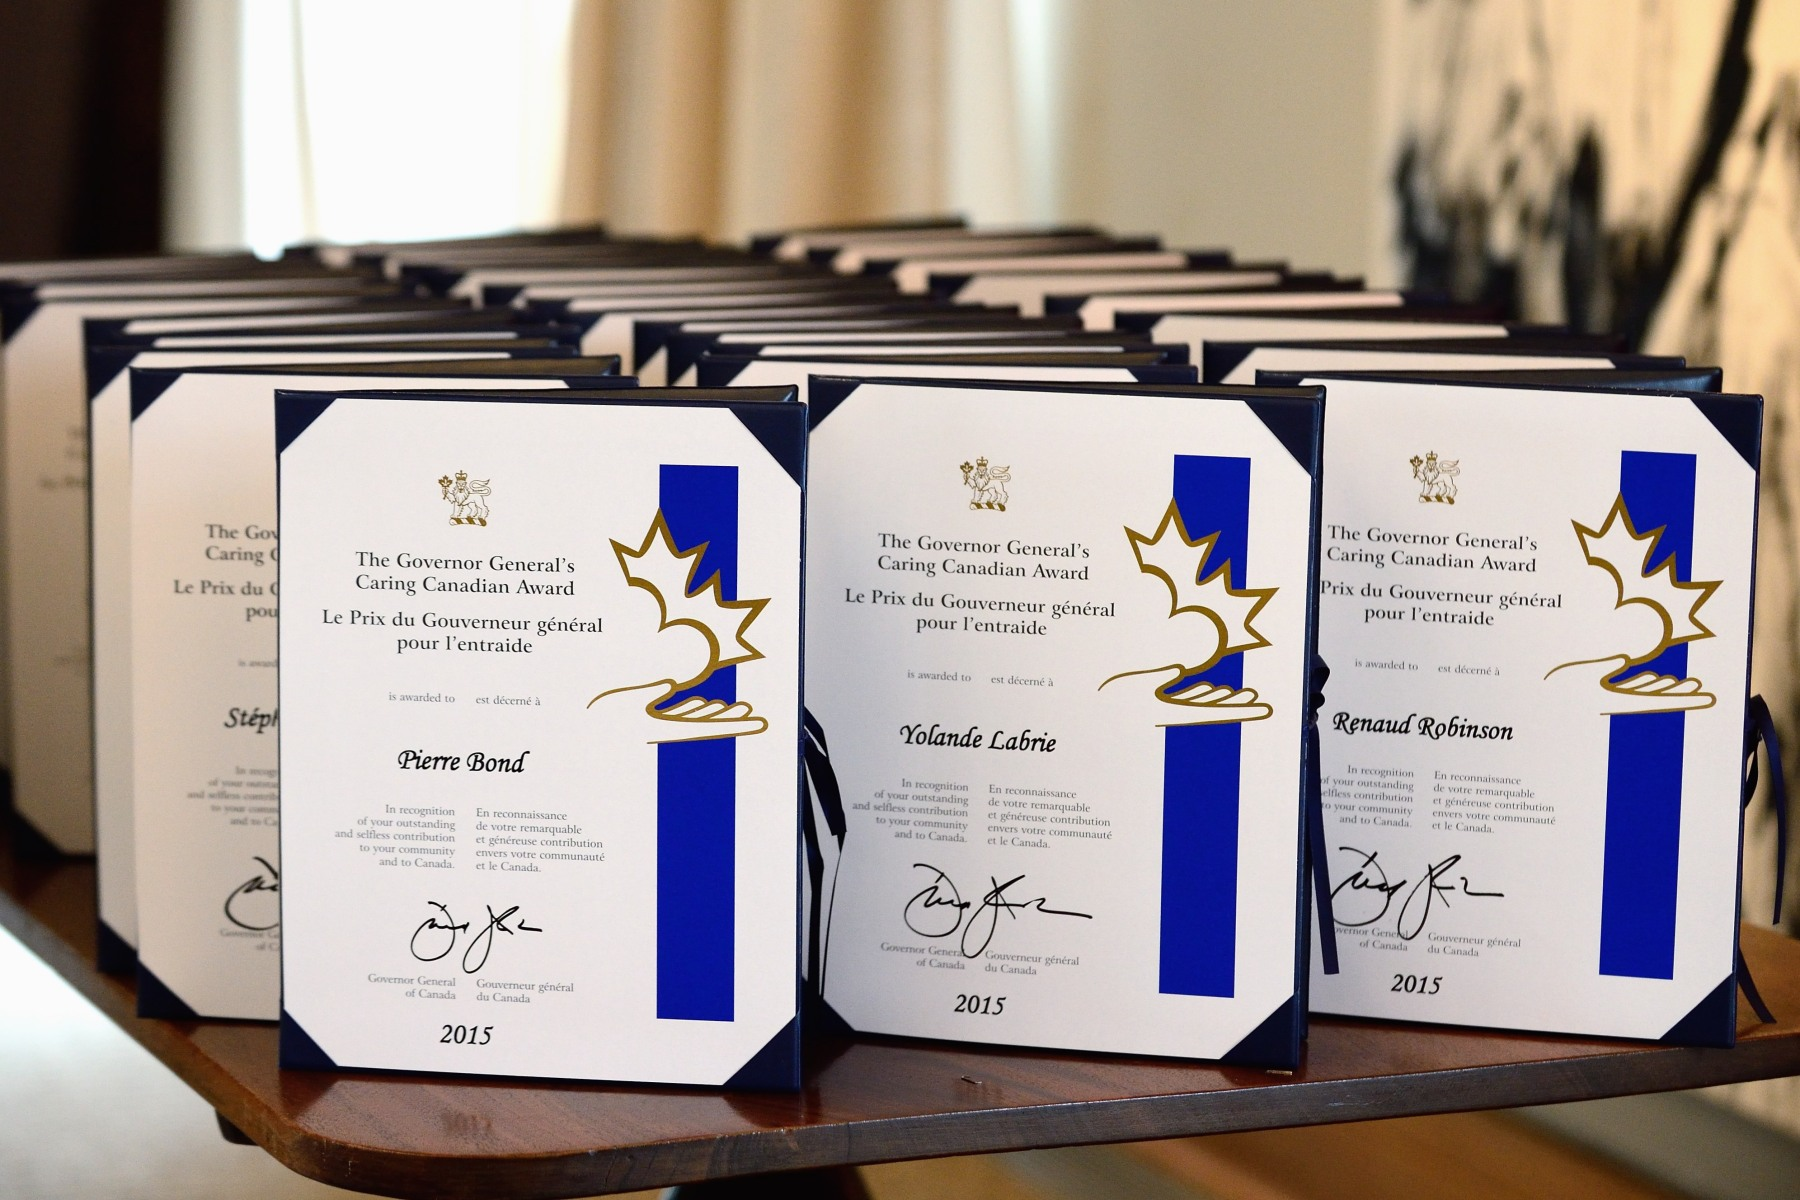 The Governor General presented the Governor General's Caring Canadian Award to 30 volunteers from various sectors of society, during a ceremony at the Residence of the Governor General at the Citadelle of Québec.